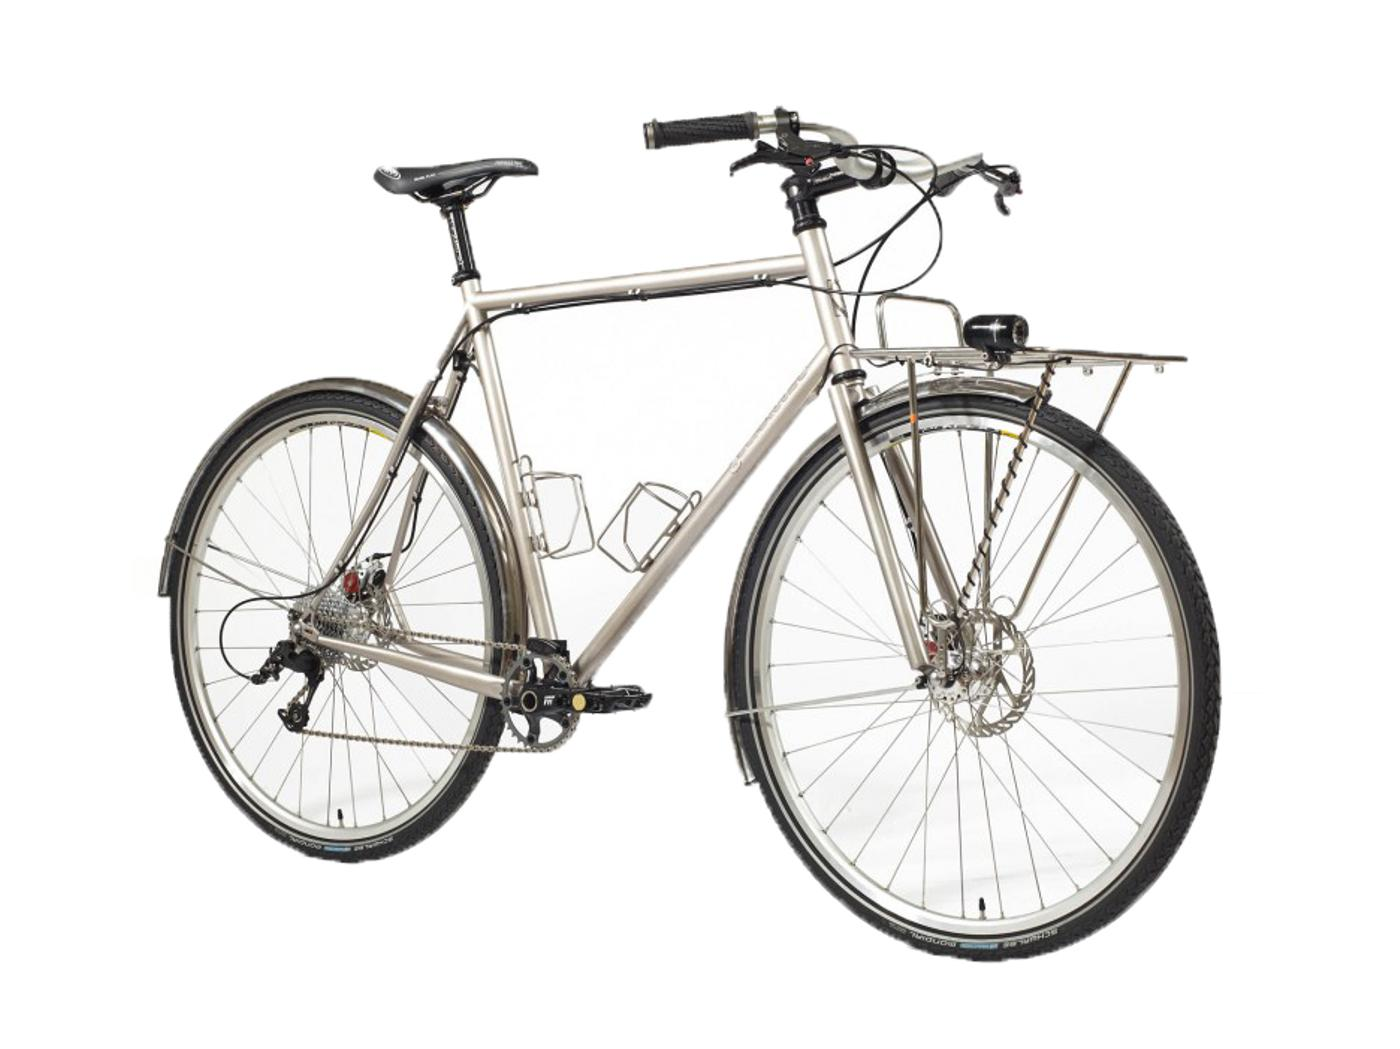 Geekhouse Bikes: The Brentwood Porteur